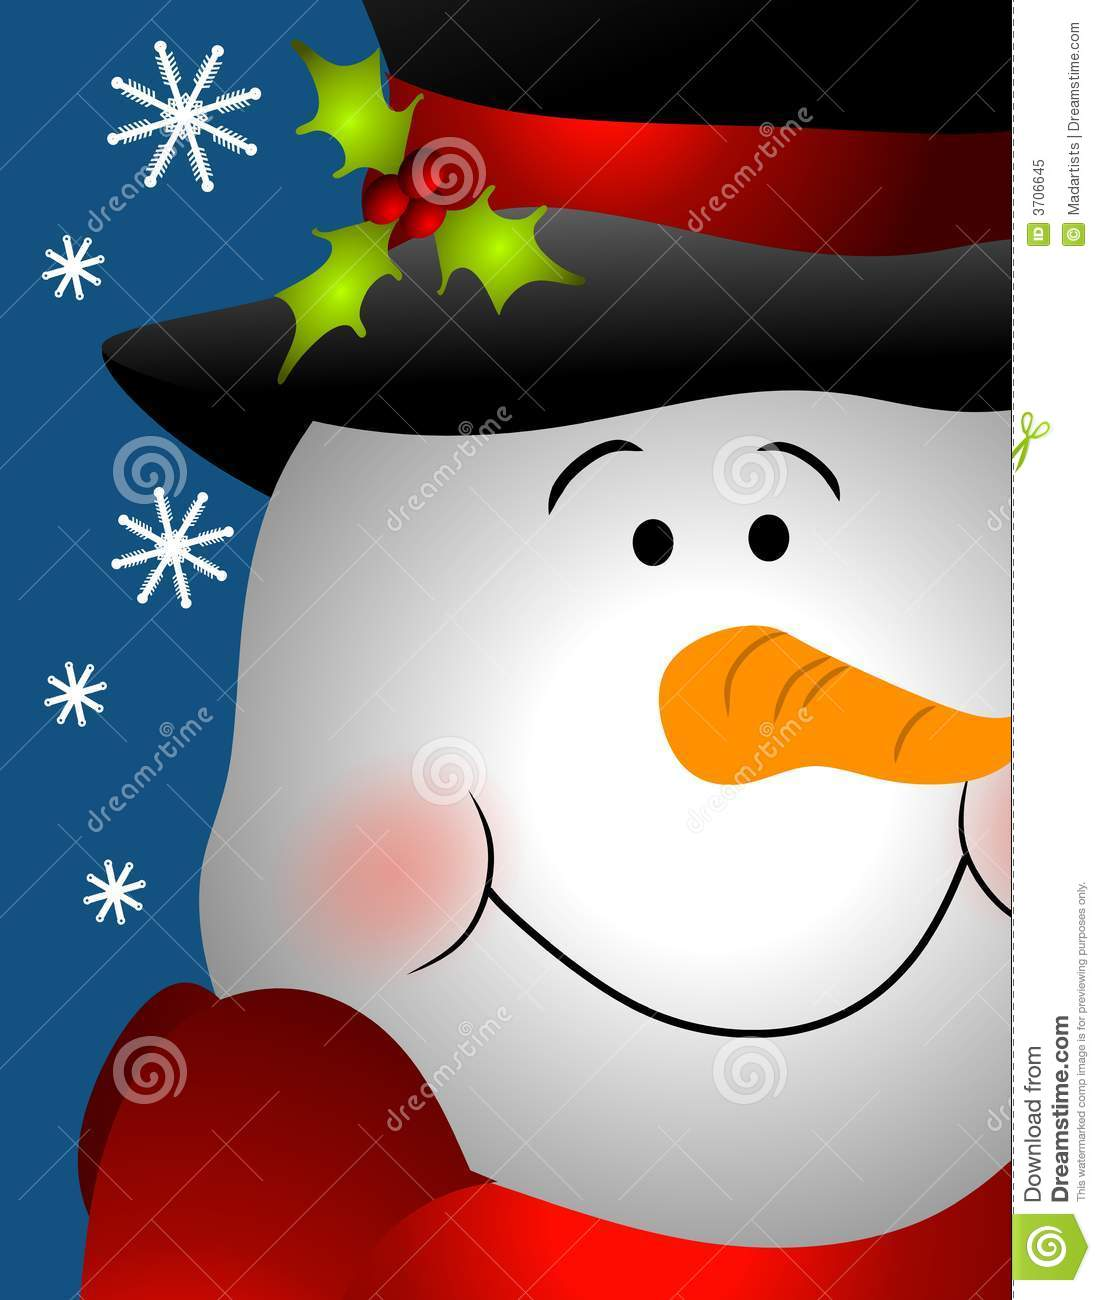 Snowman Face Clipart Smiling Snowman Face Close Up Royalty Free Stock Photo